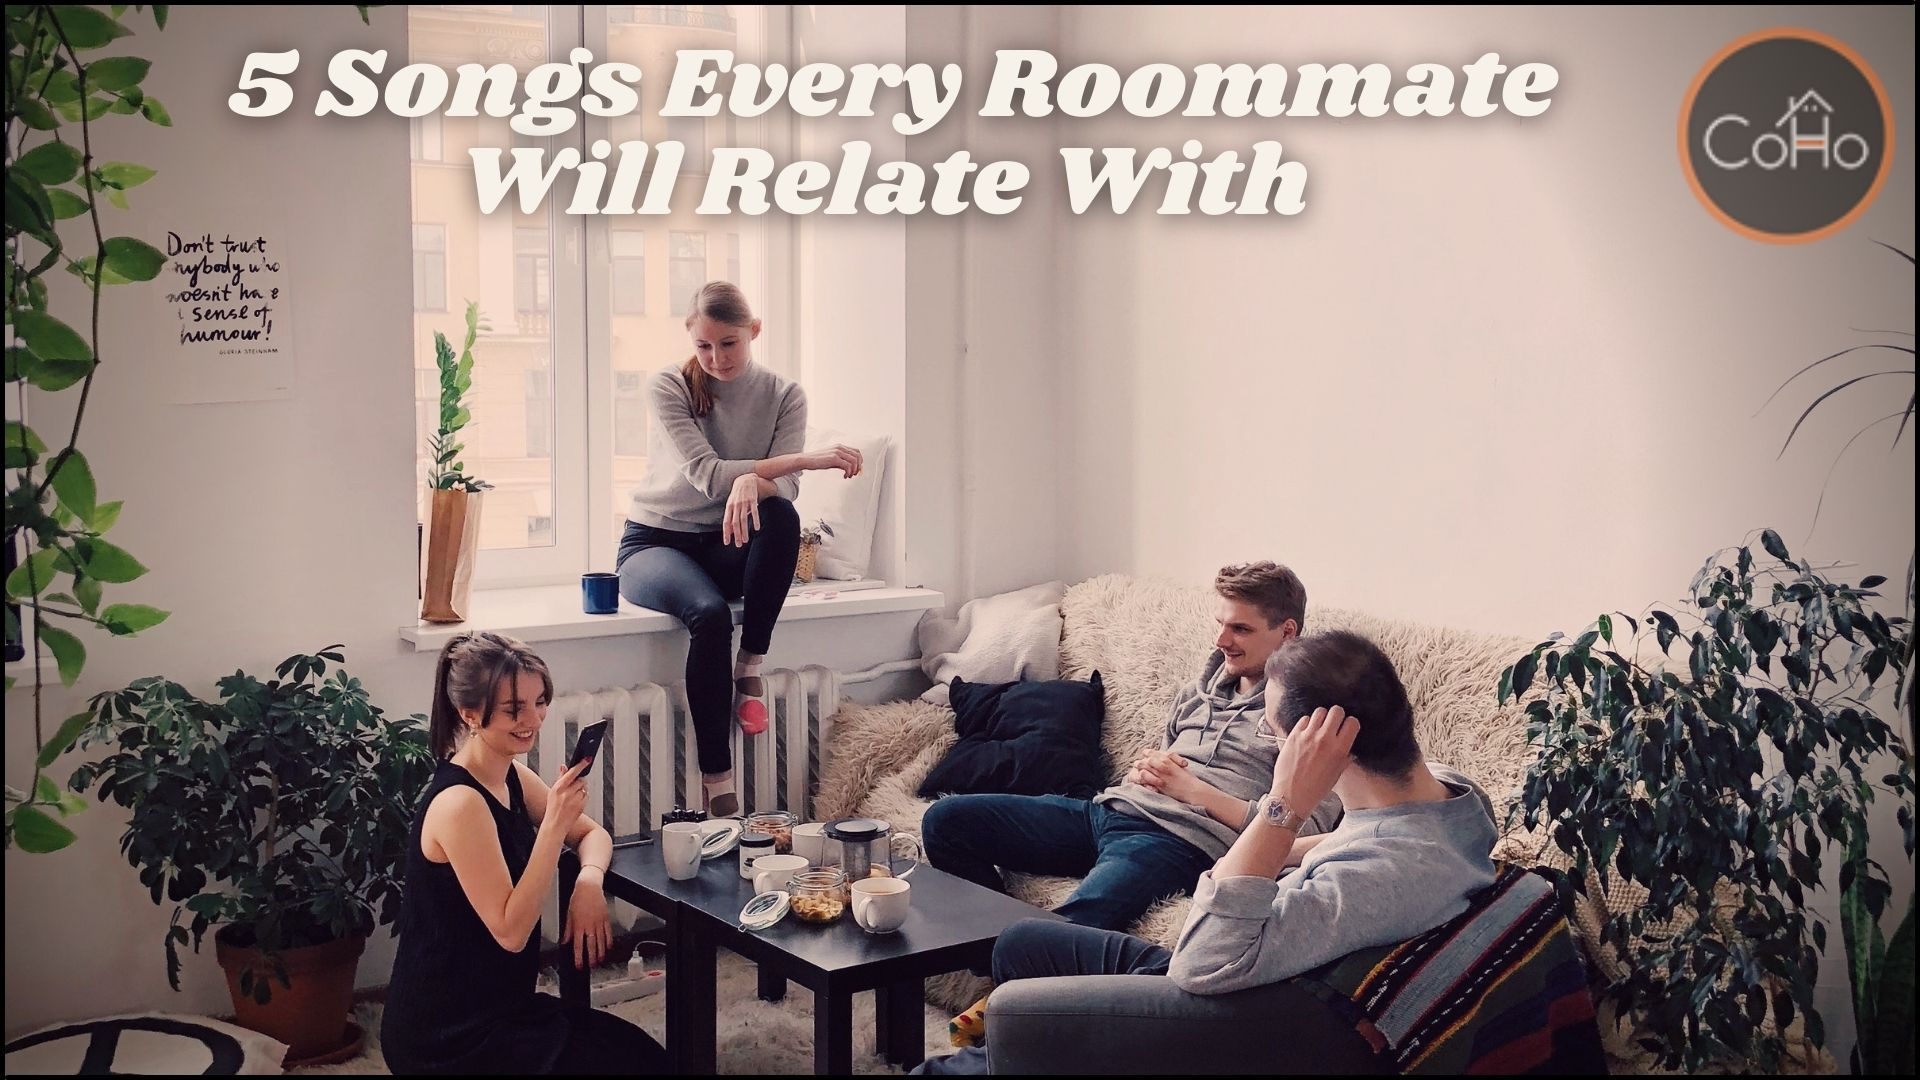 5 Songs that every roommate will relate with